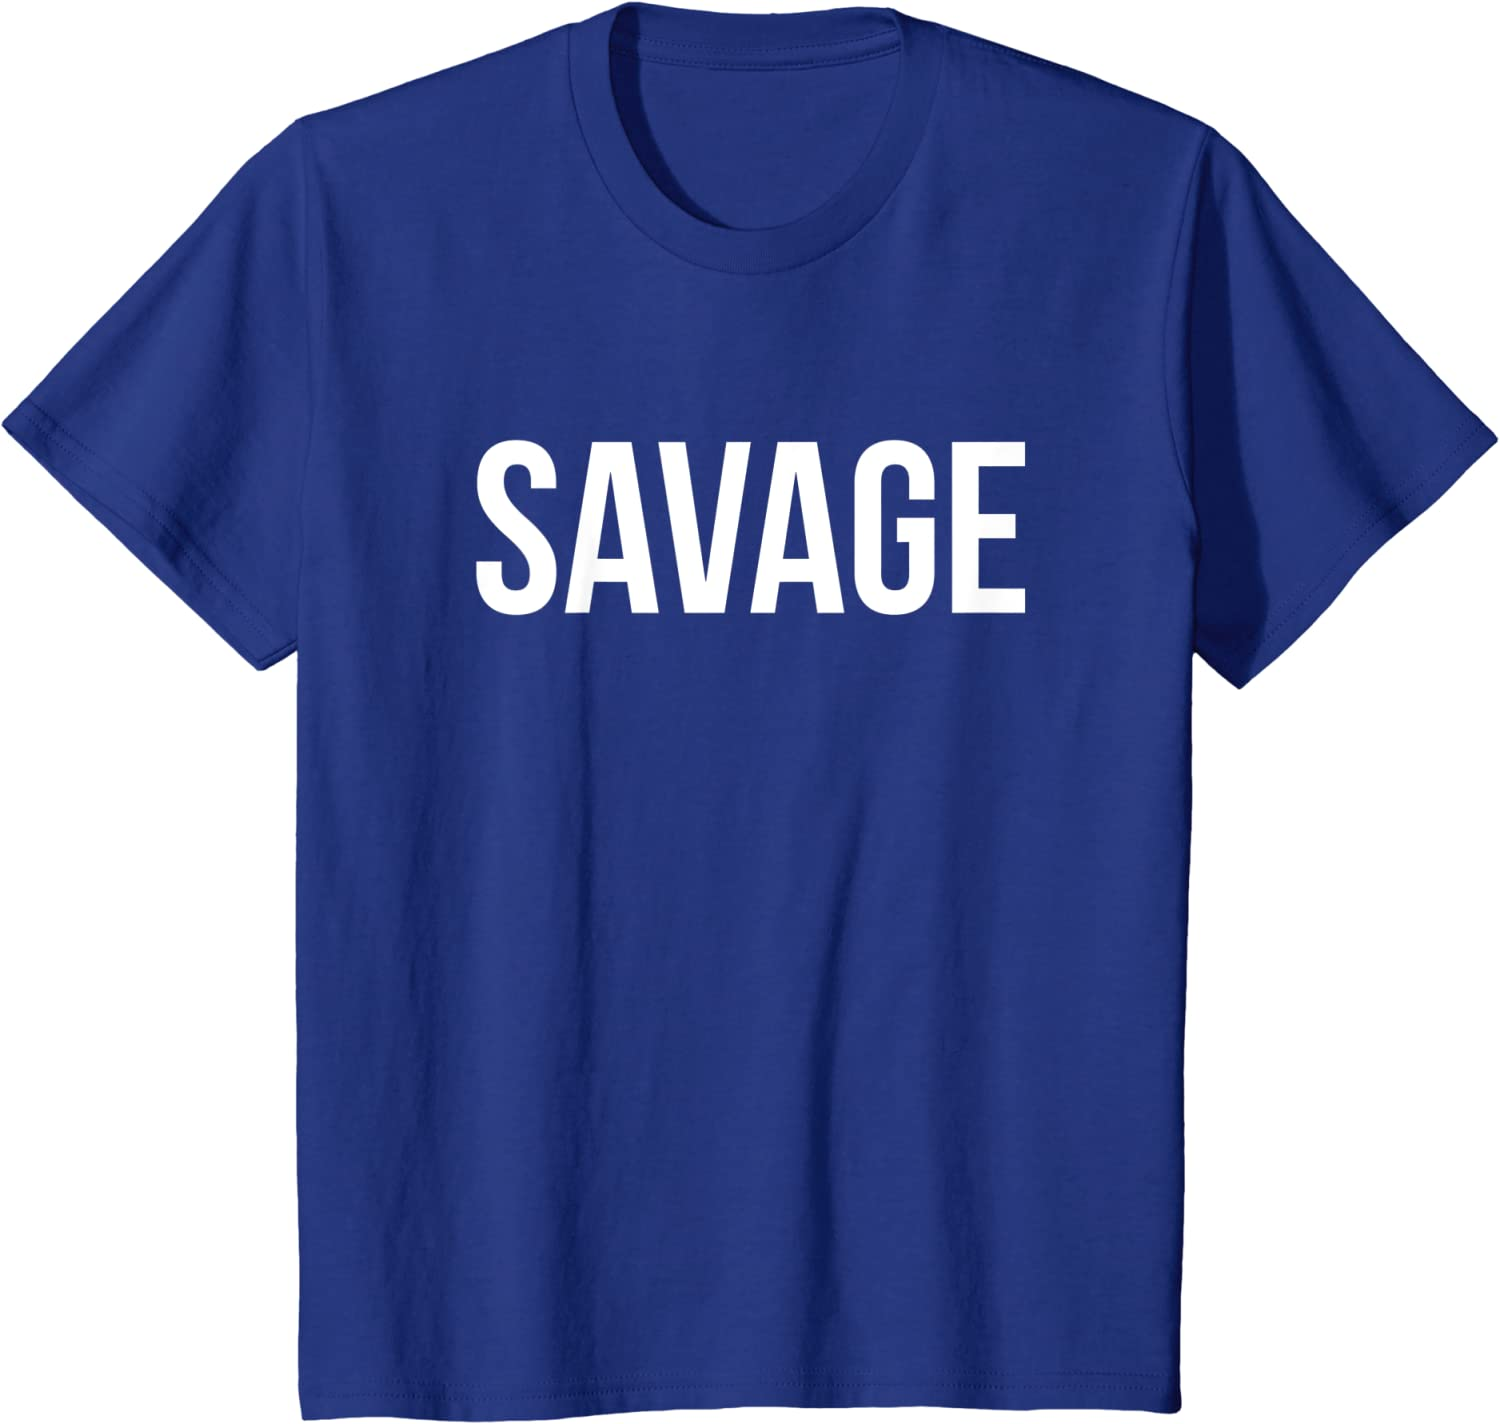 Savage T Shirt Clothing Amazon Com